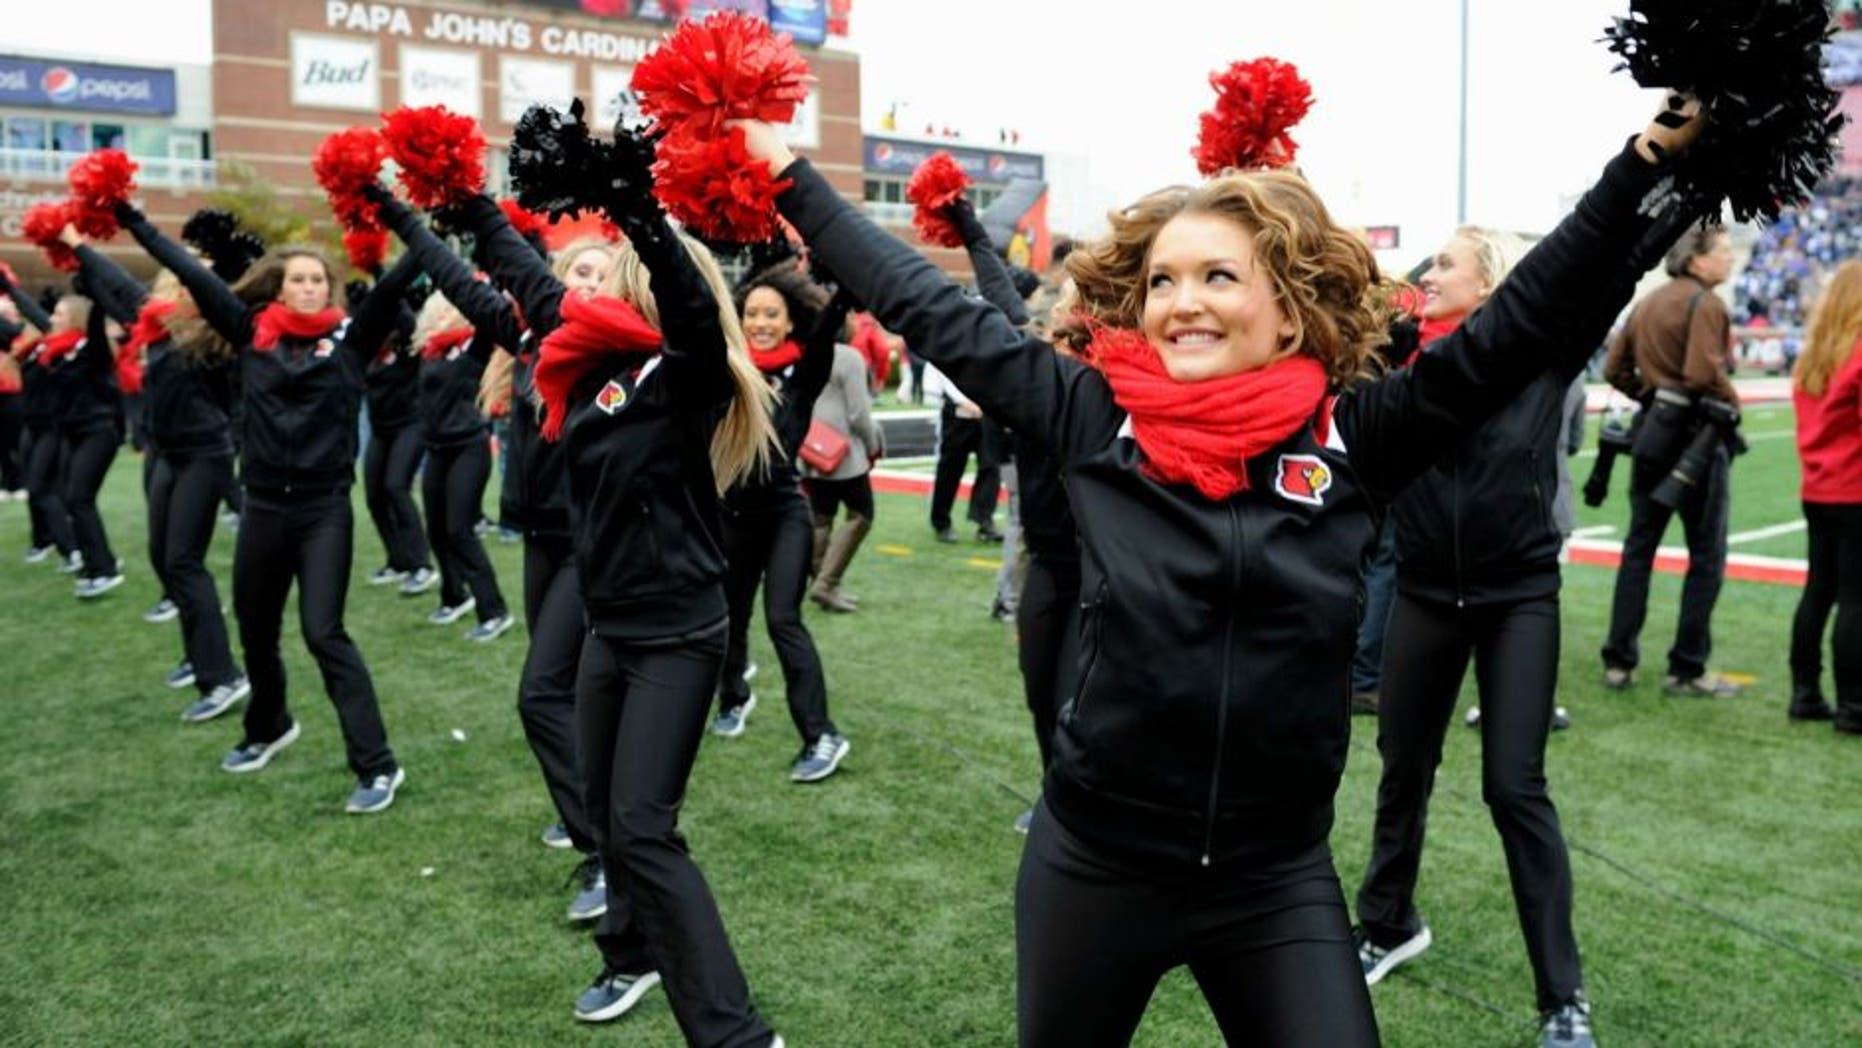 Nov 29, 2014; Louisville, KY, USA; The Louisville Cardinals cheerleaders perform during the second quarter against the Kentucky Wildcats at Papa John's Cardinal Stadium. Mandatory Credit: Jamie Rhodes-USA TODAY Sports